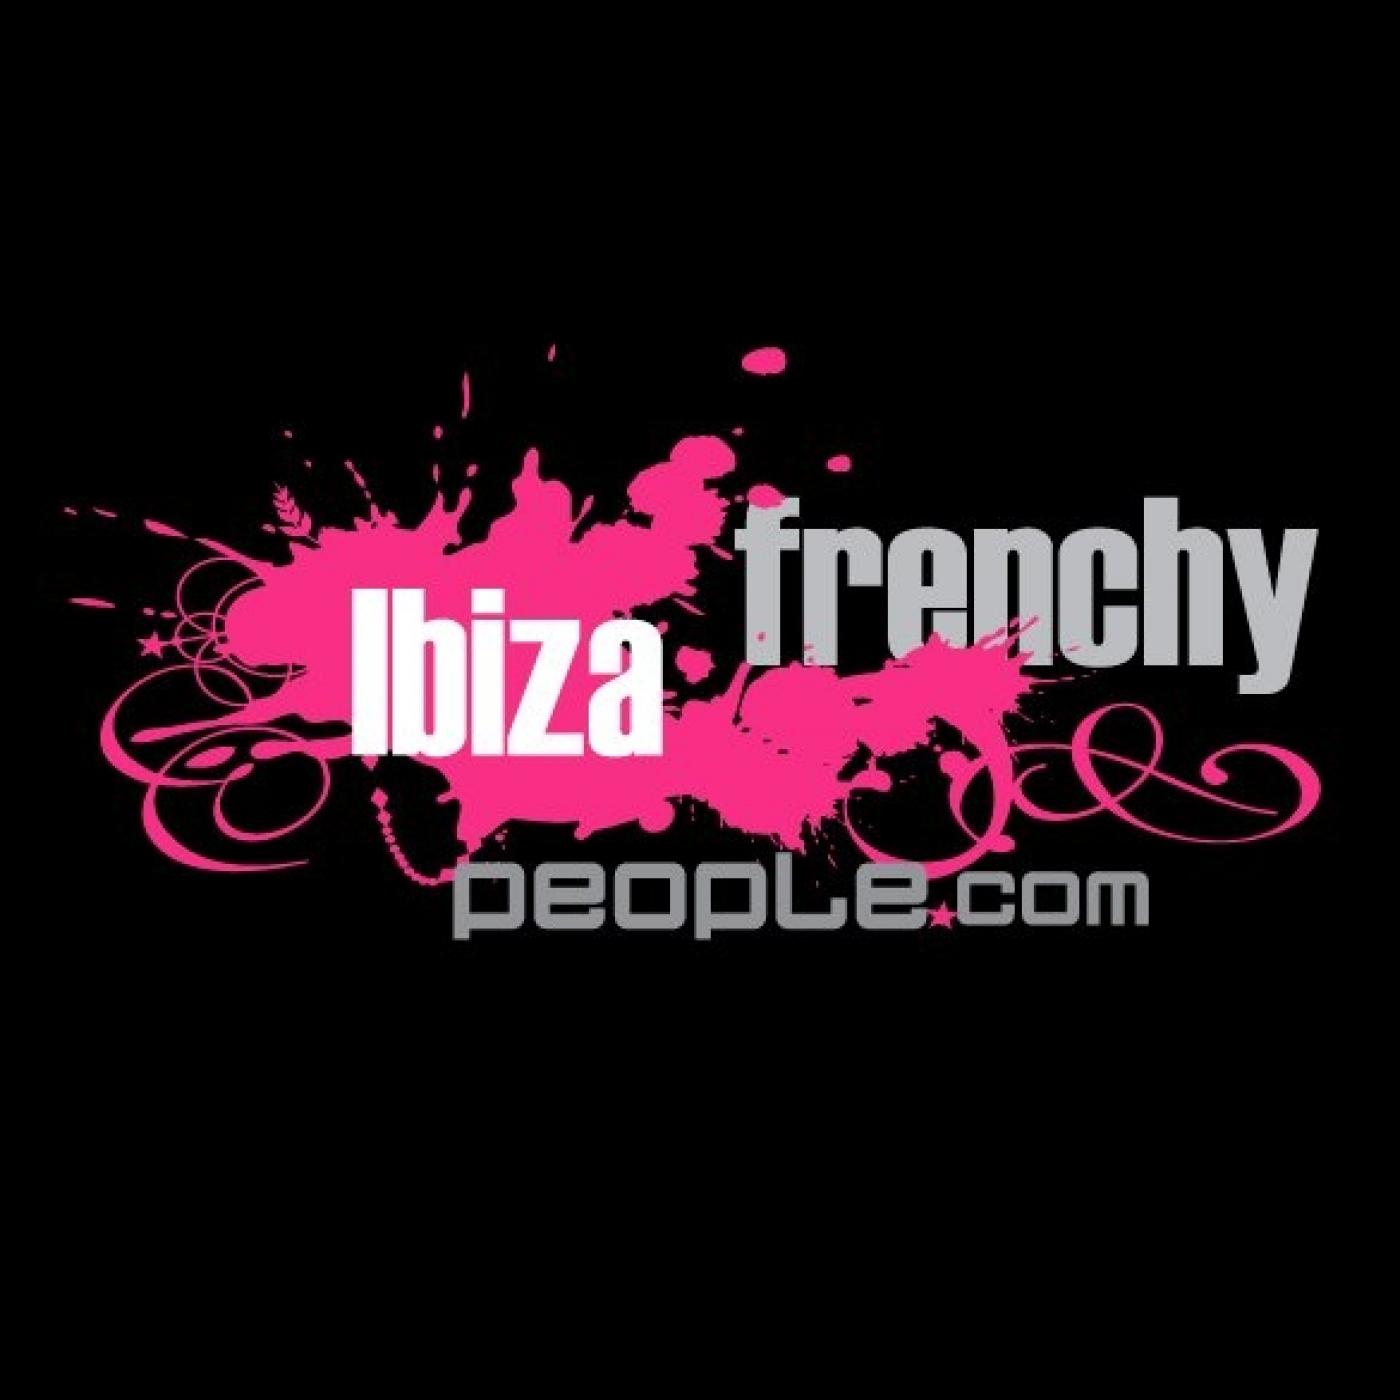 Ibiza Frenchy People